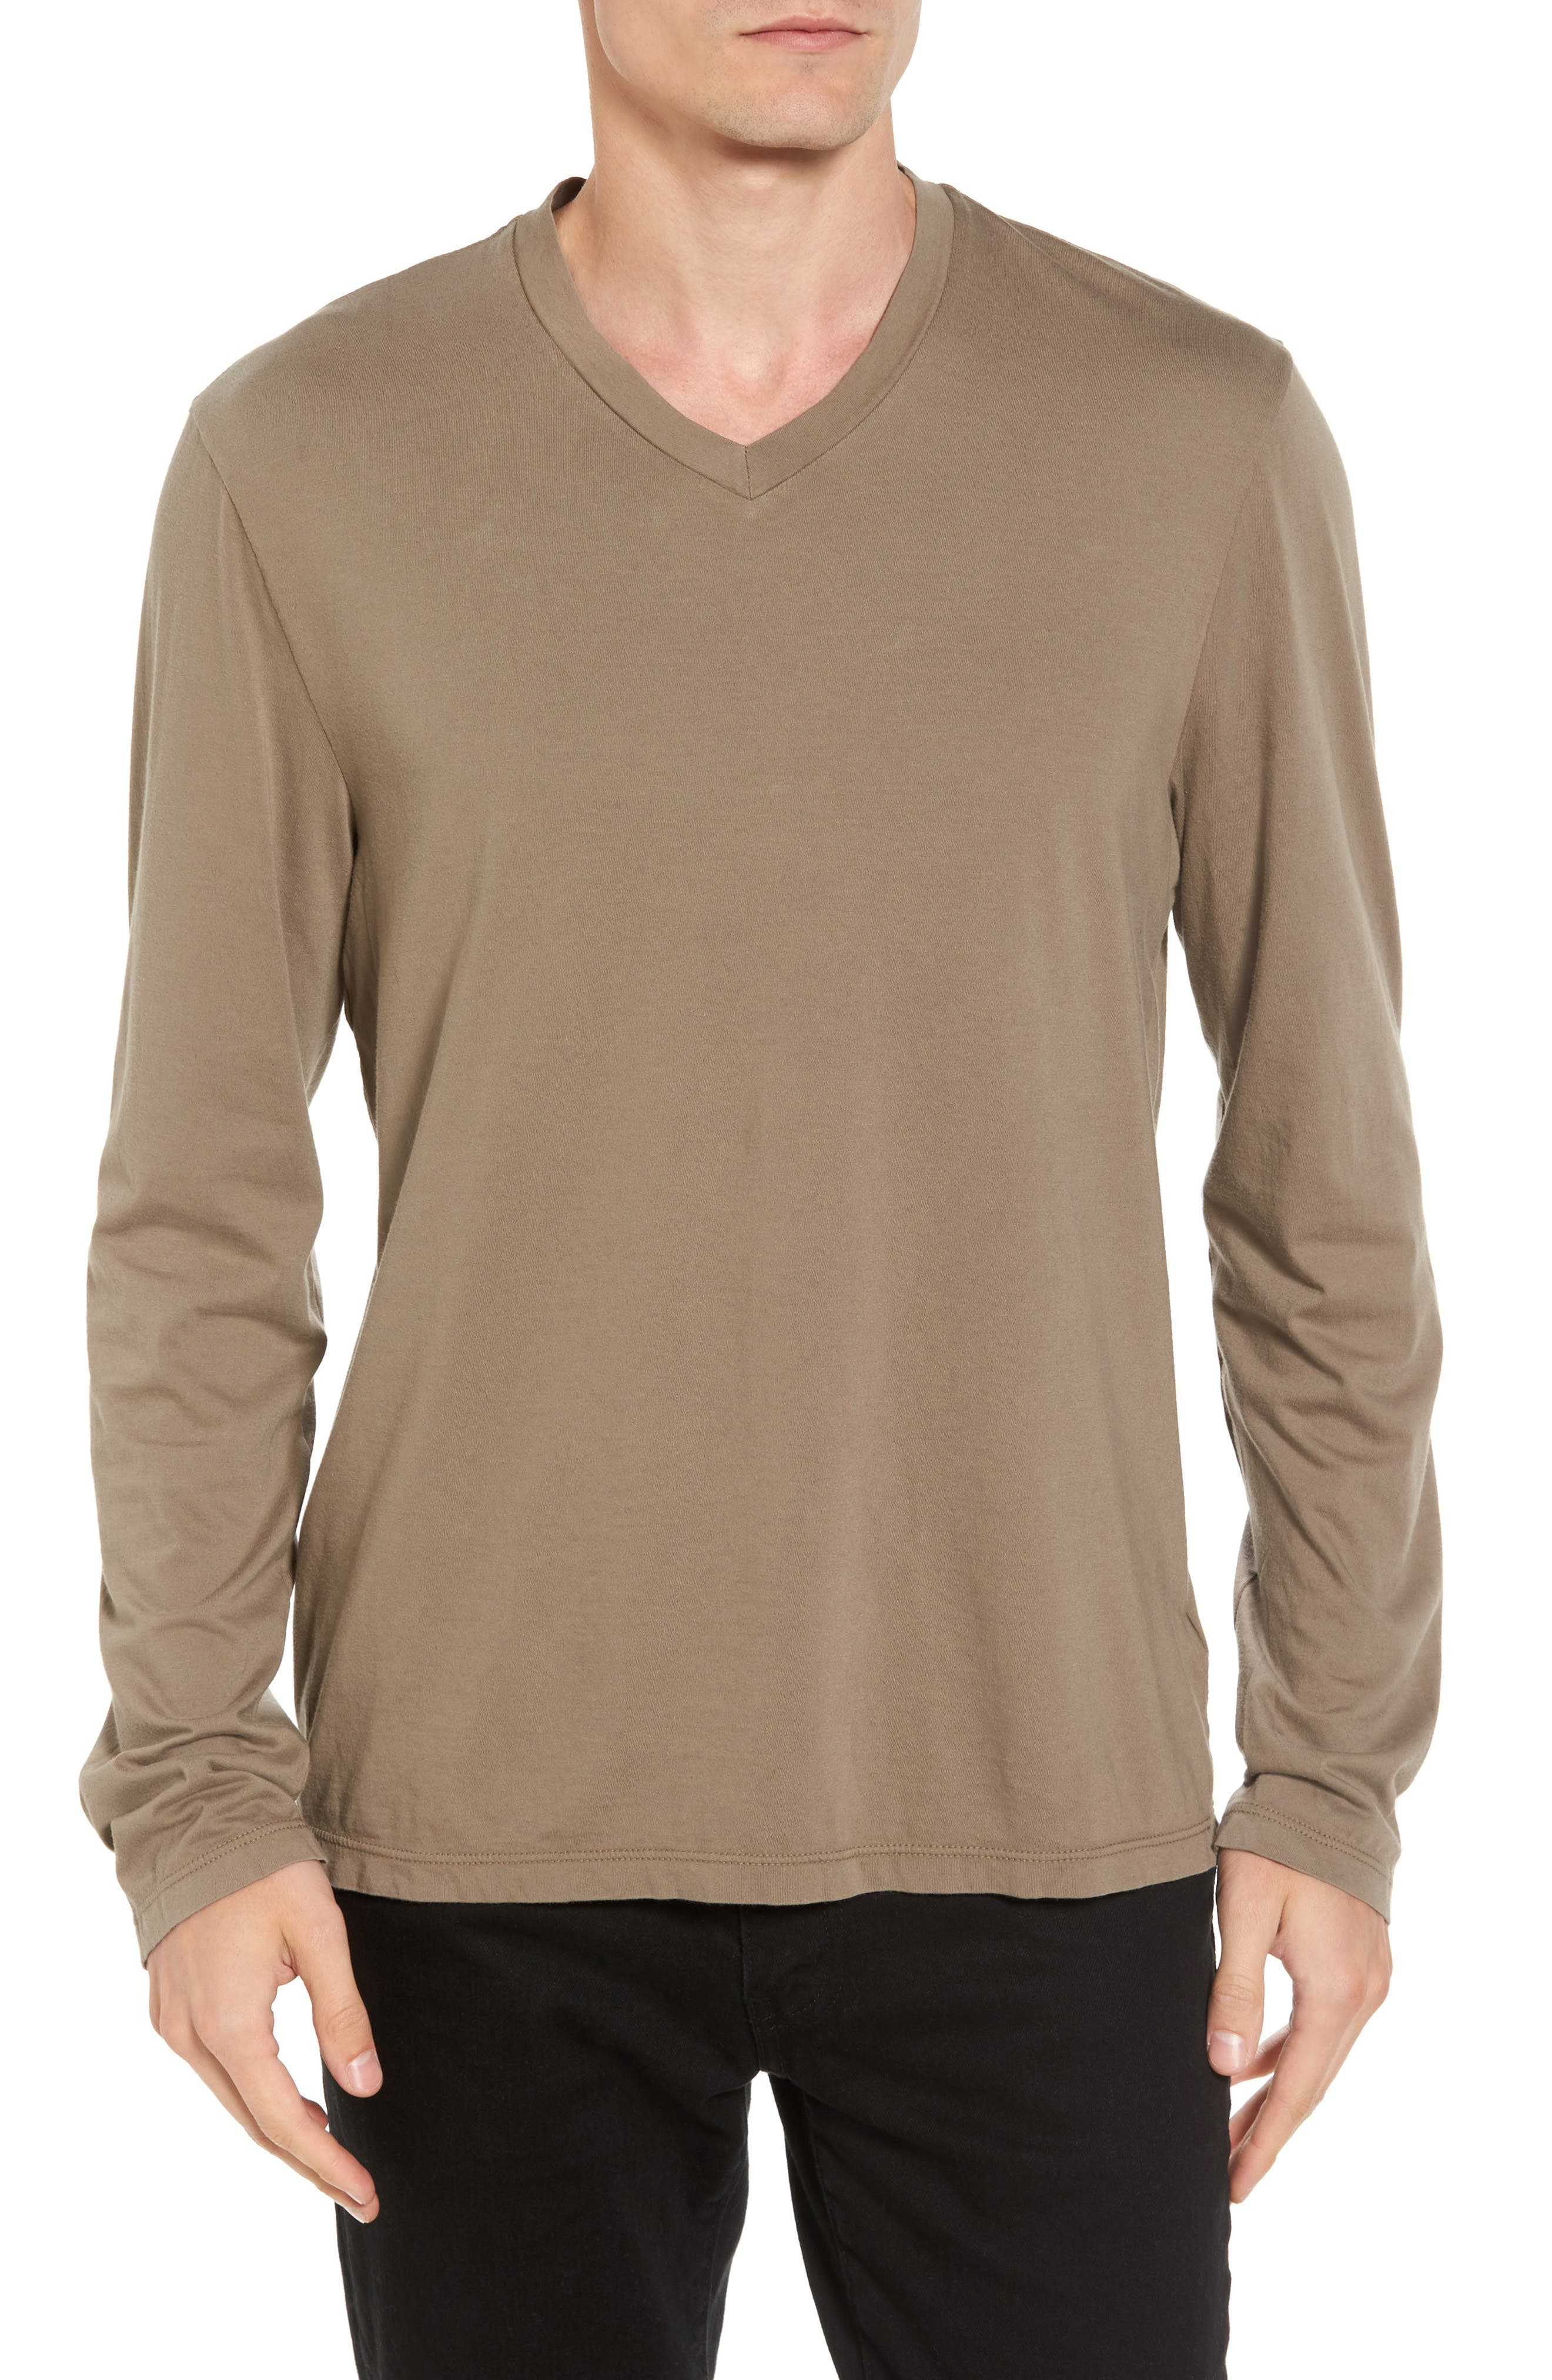 Main Image - James Perse Suvin V-Neck Sweatshirt